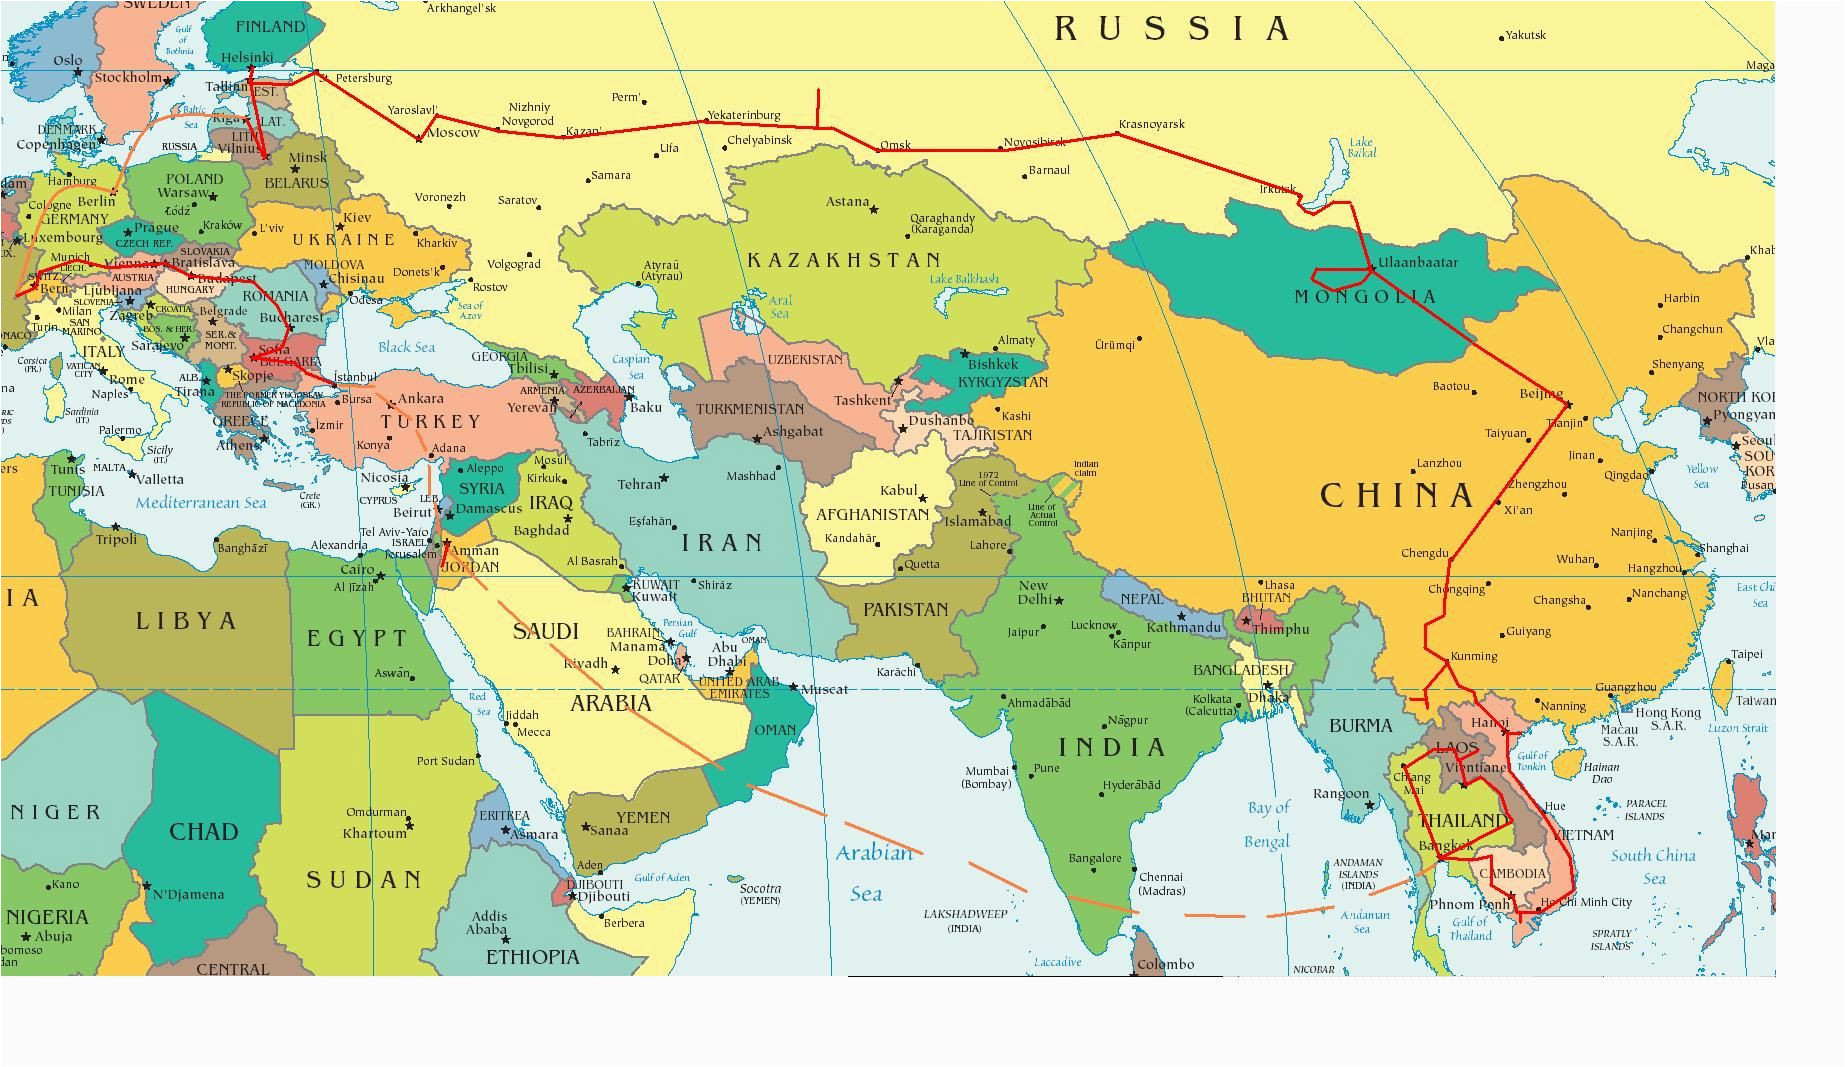 eastern europe and middle east partial europe middle east asia